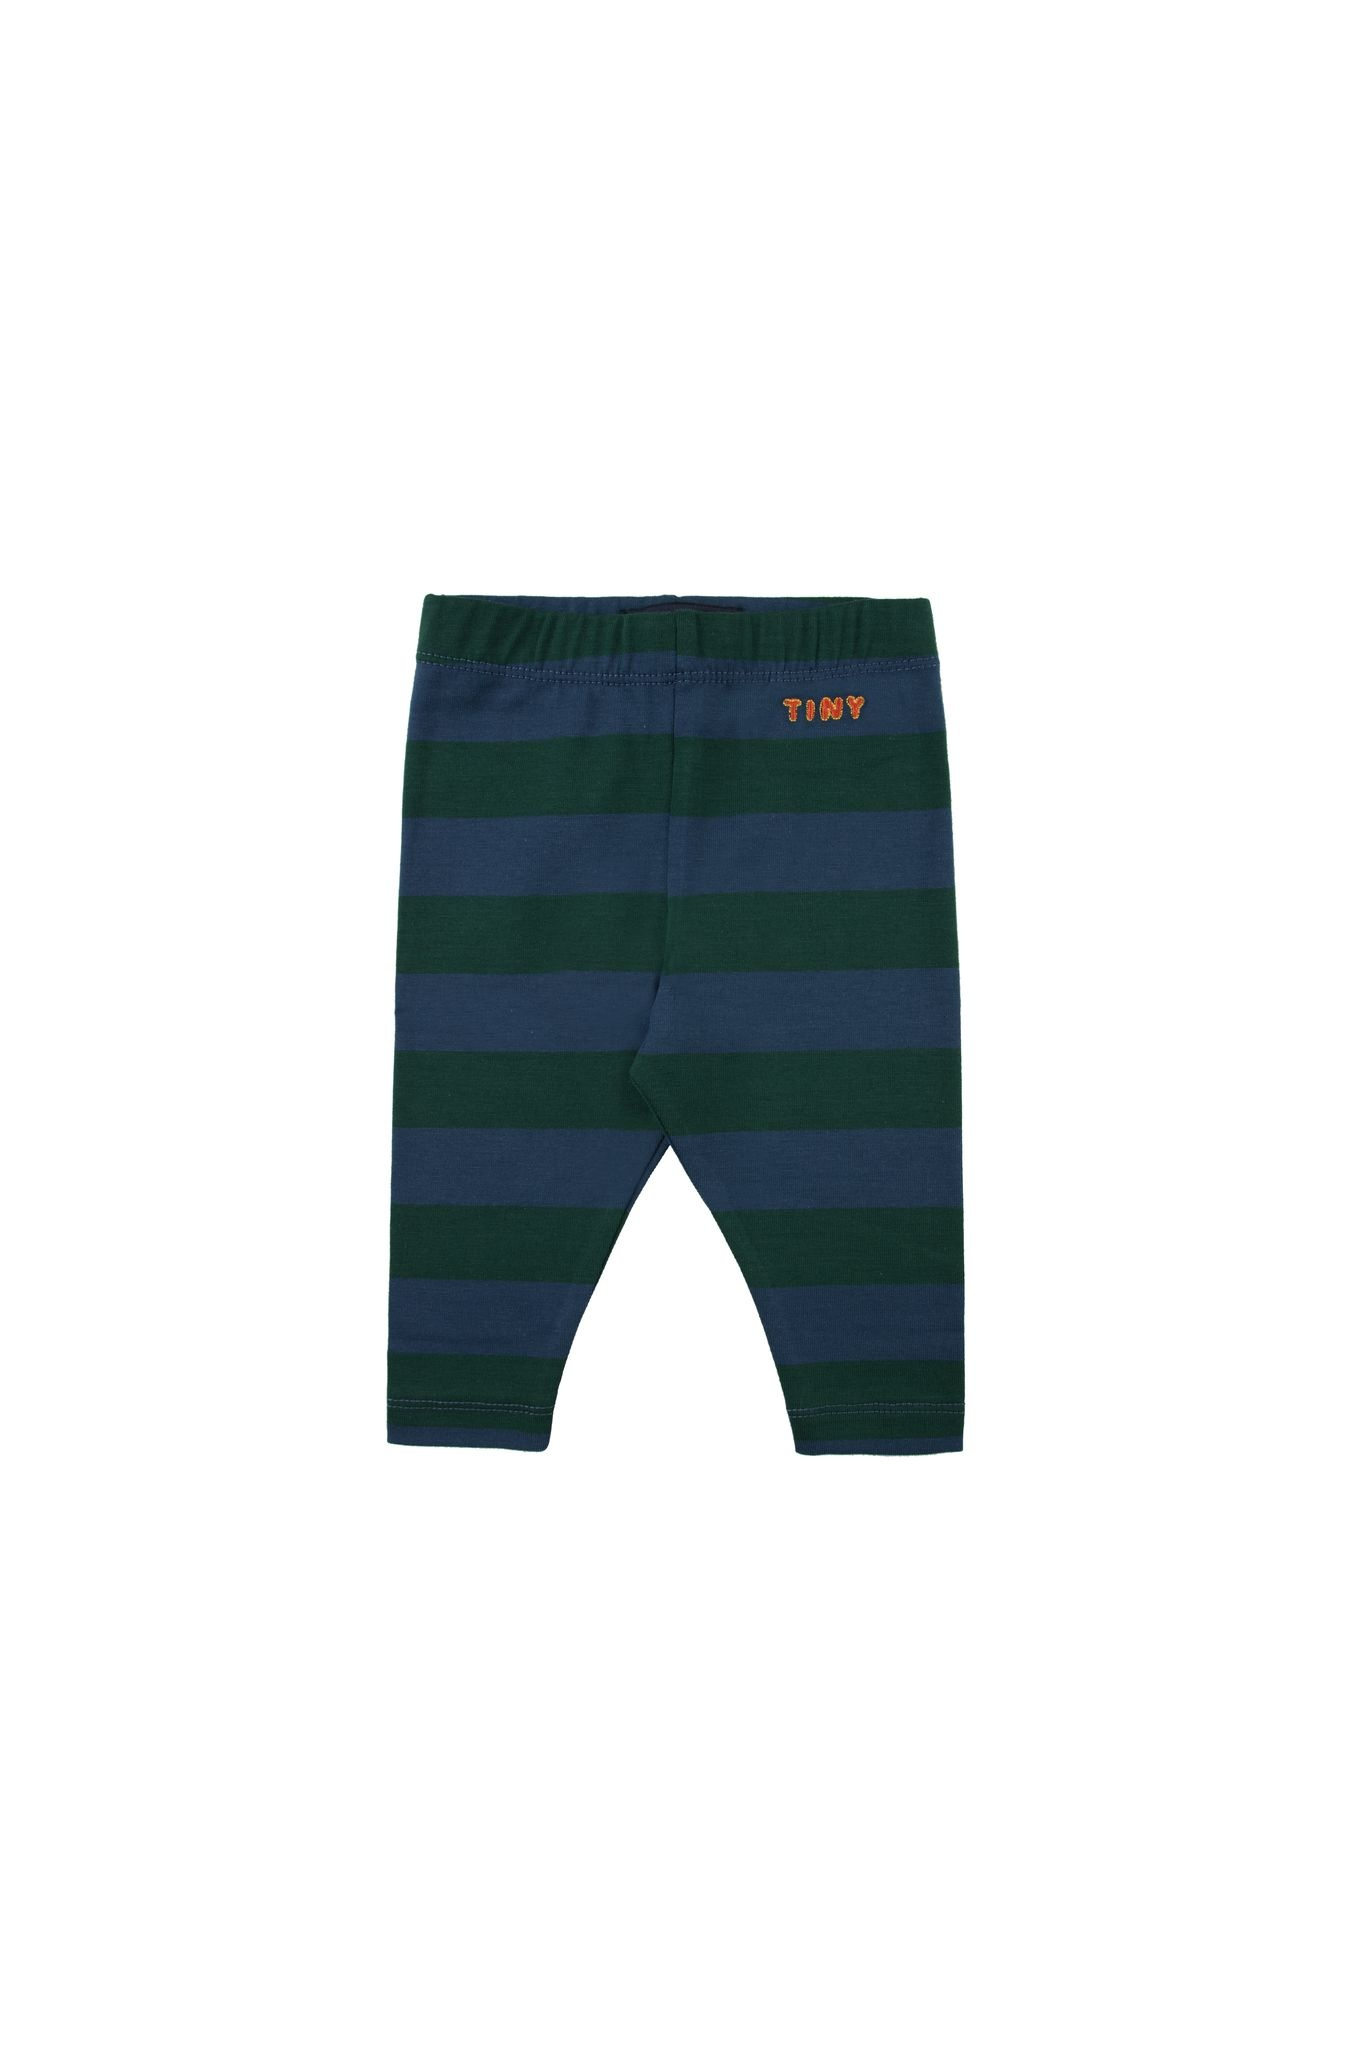 Tiny Stripes pant - Dark Green / Light Navy-1